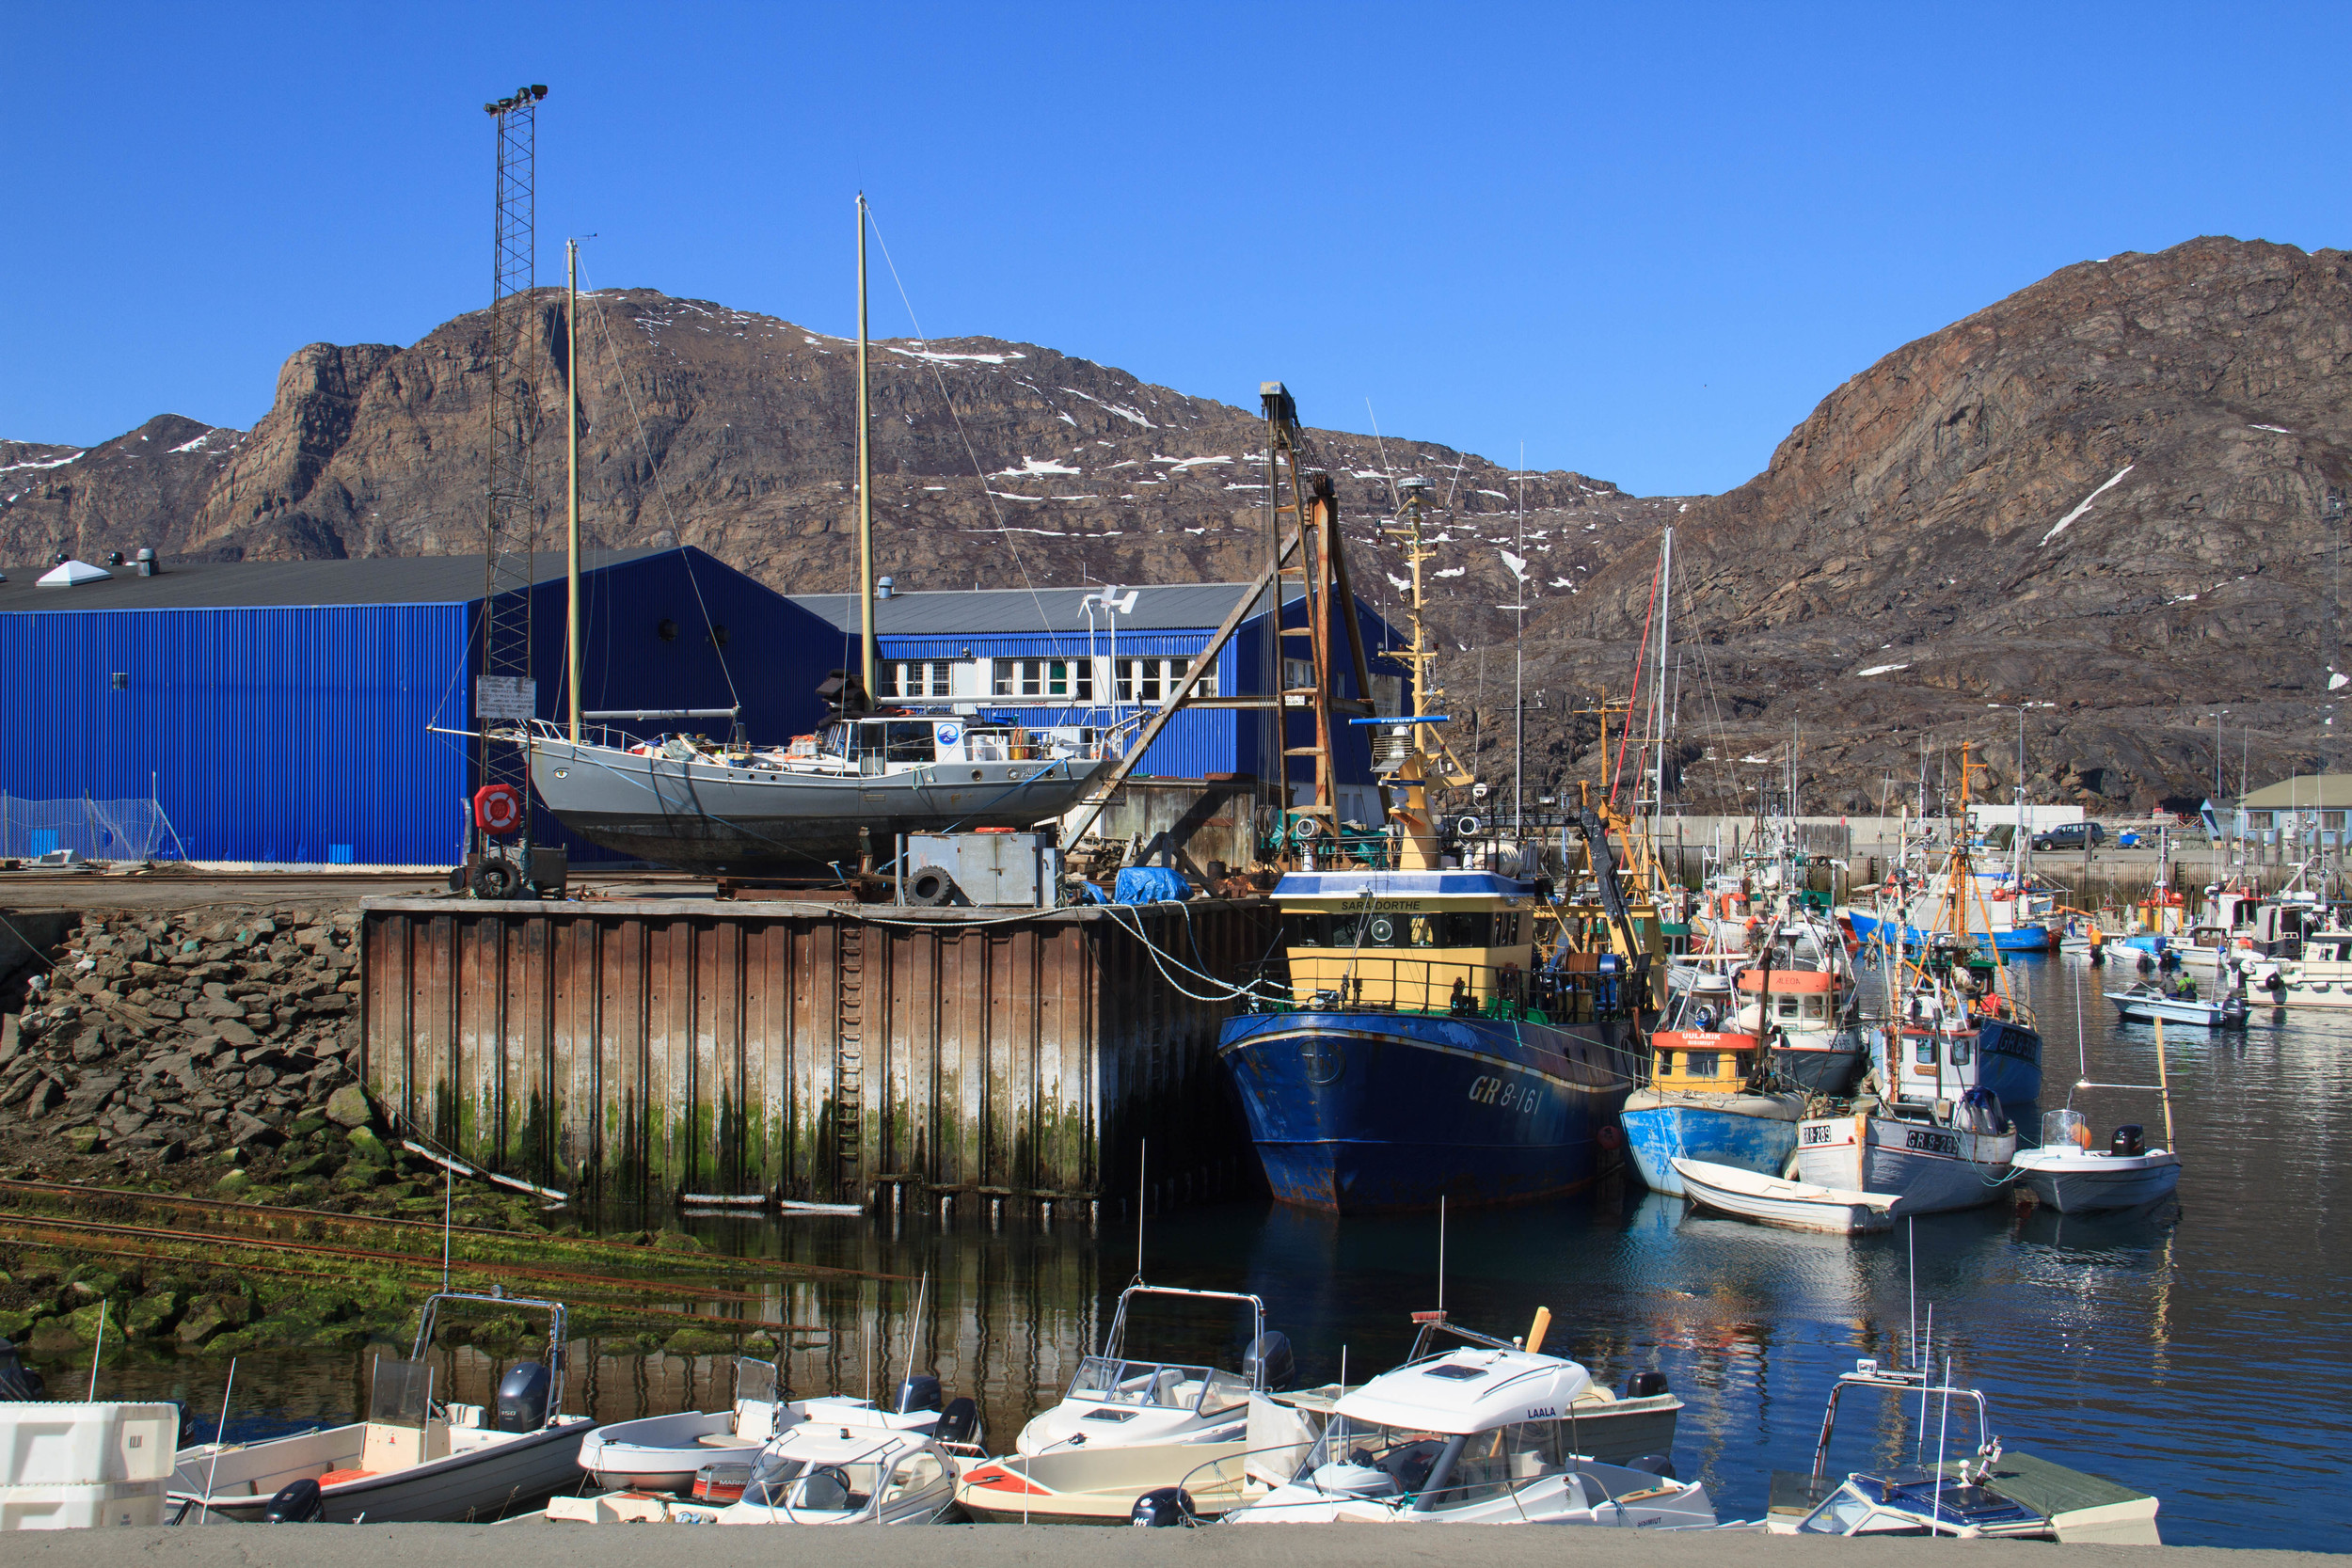 'Ault's' winter berth in the boatyard in Arctic Sisimiut.